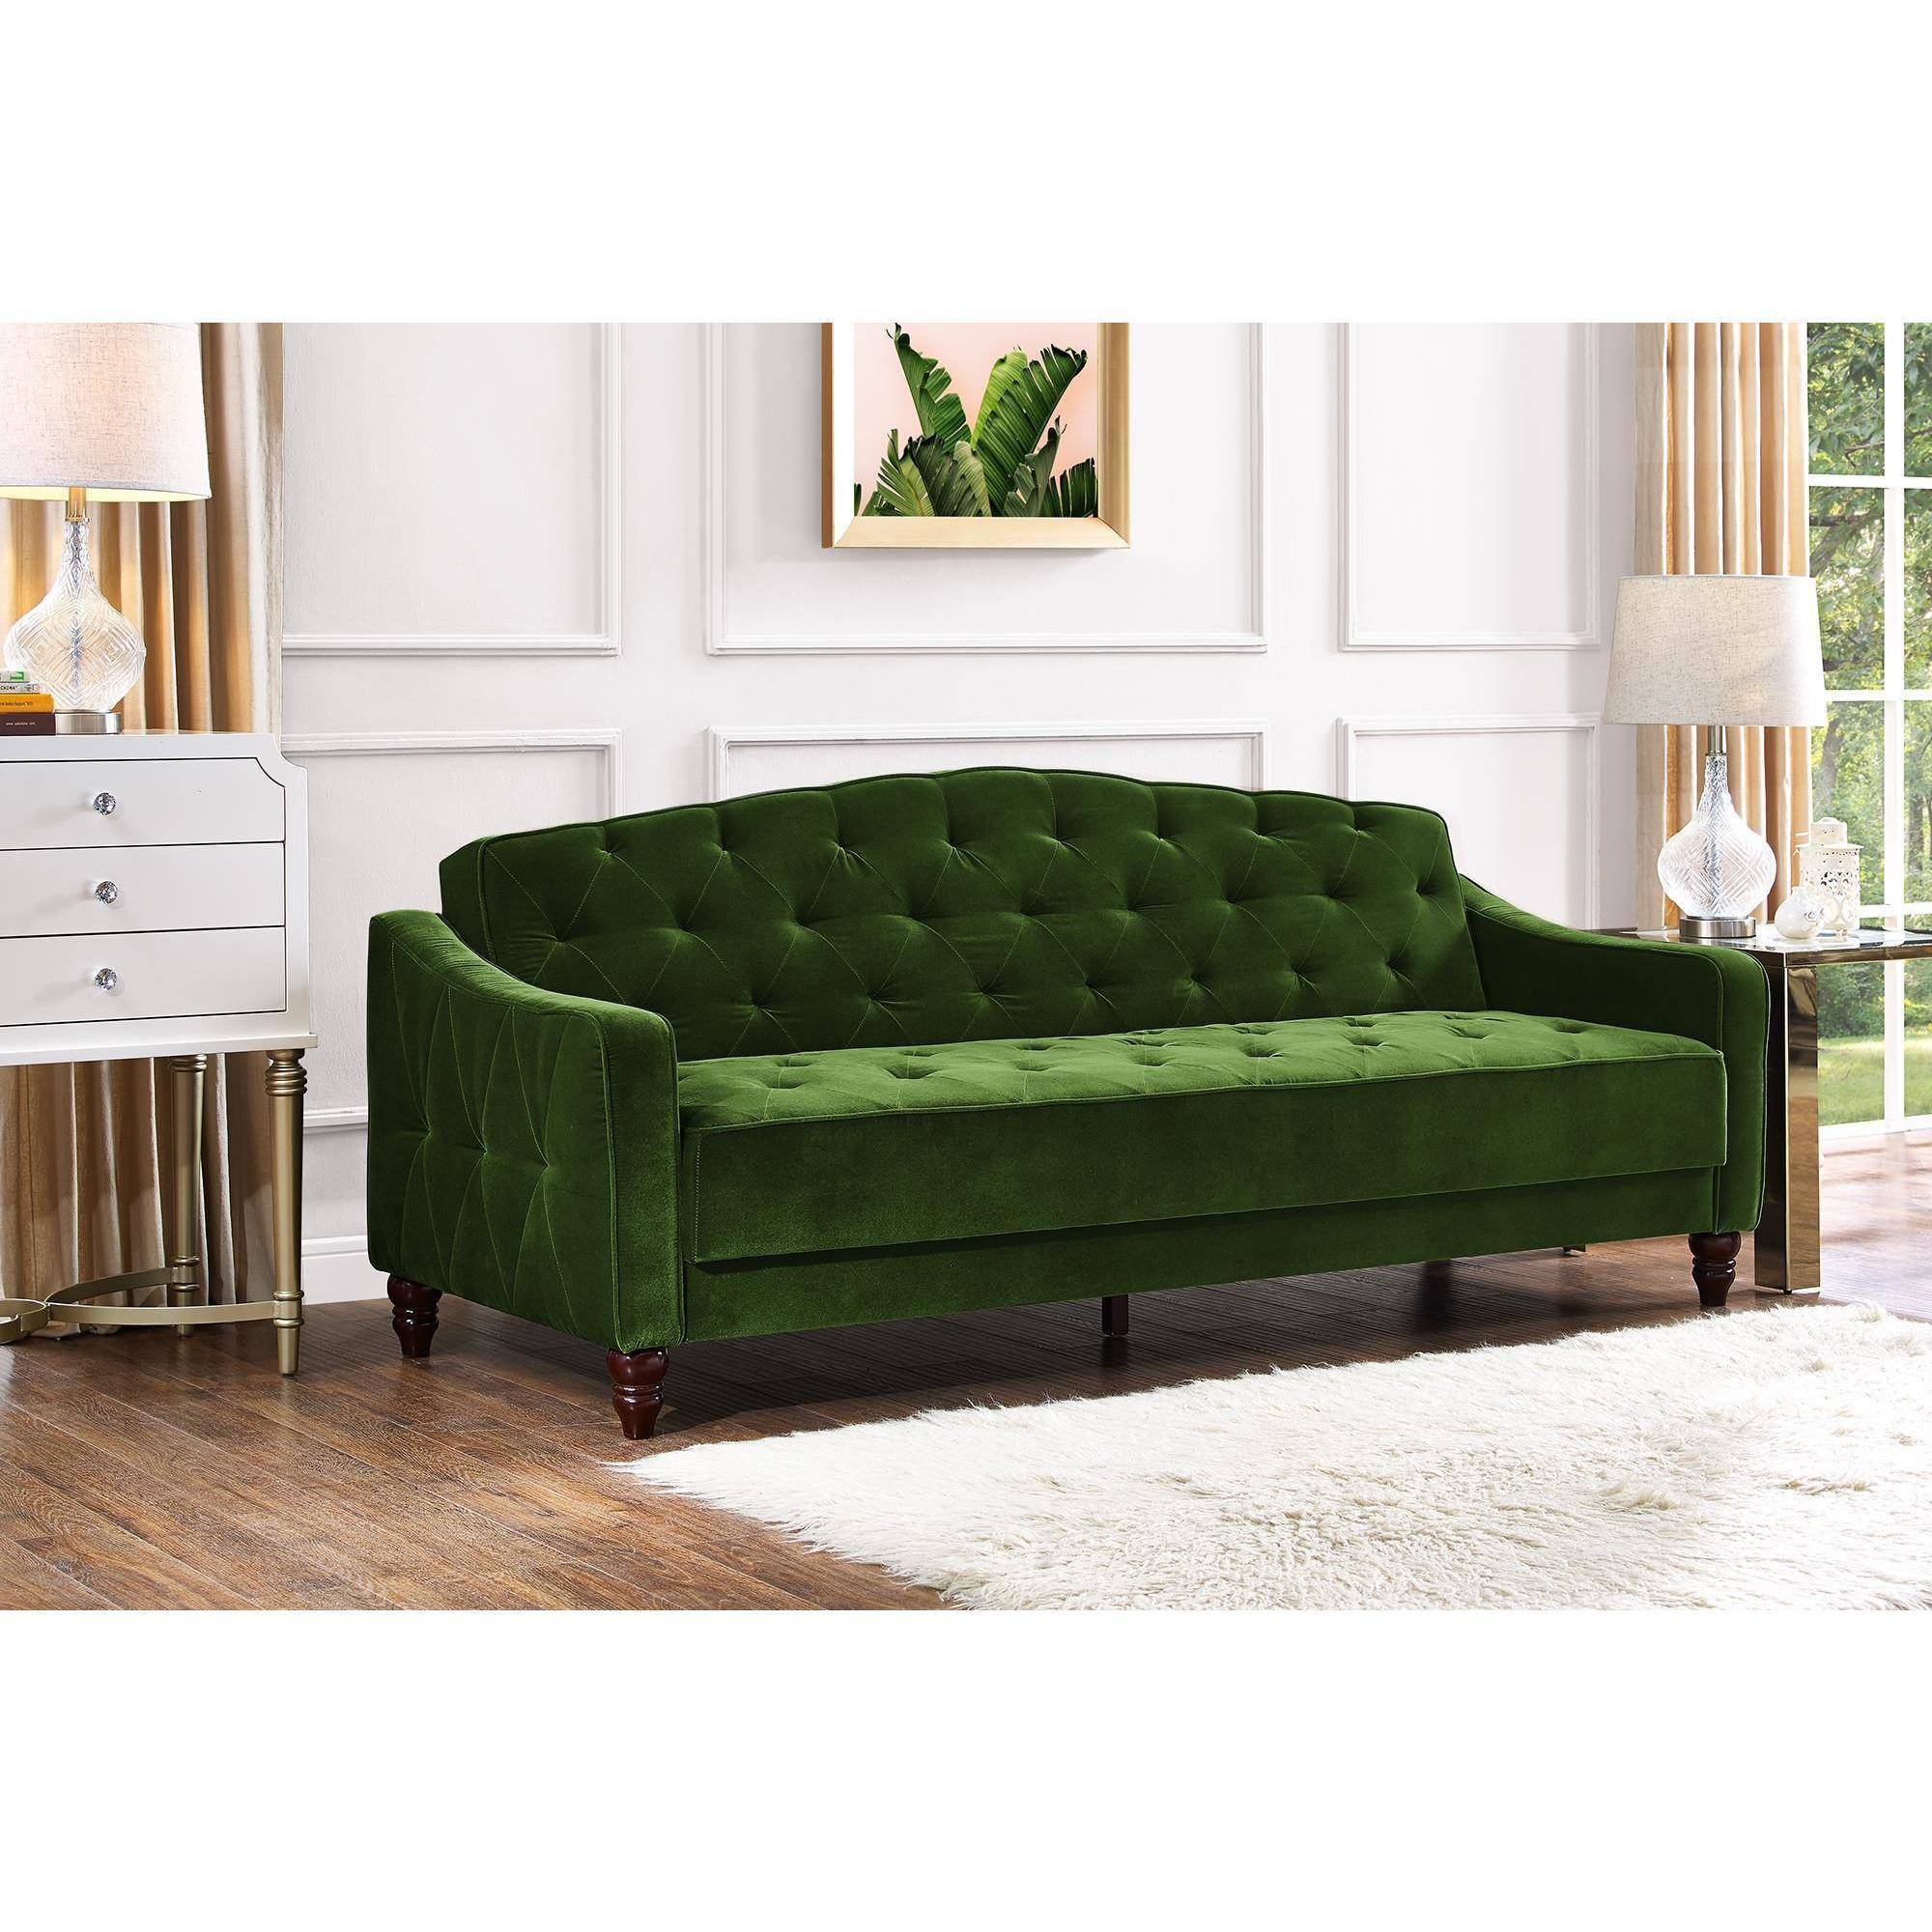 sofa sleeper serta for slipcovers relaxed related sofas duck t post piece furniture new of slipcover walmart fit